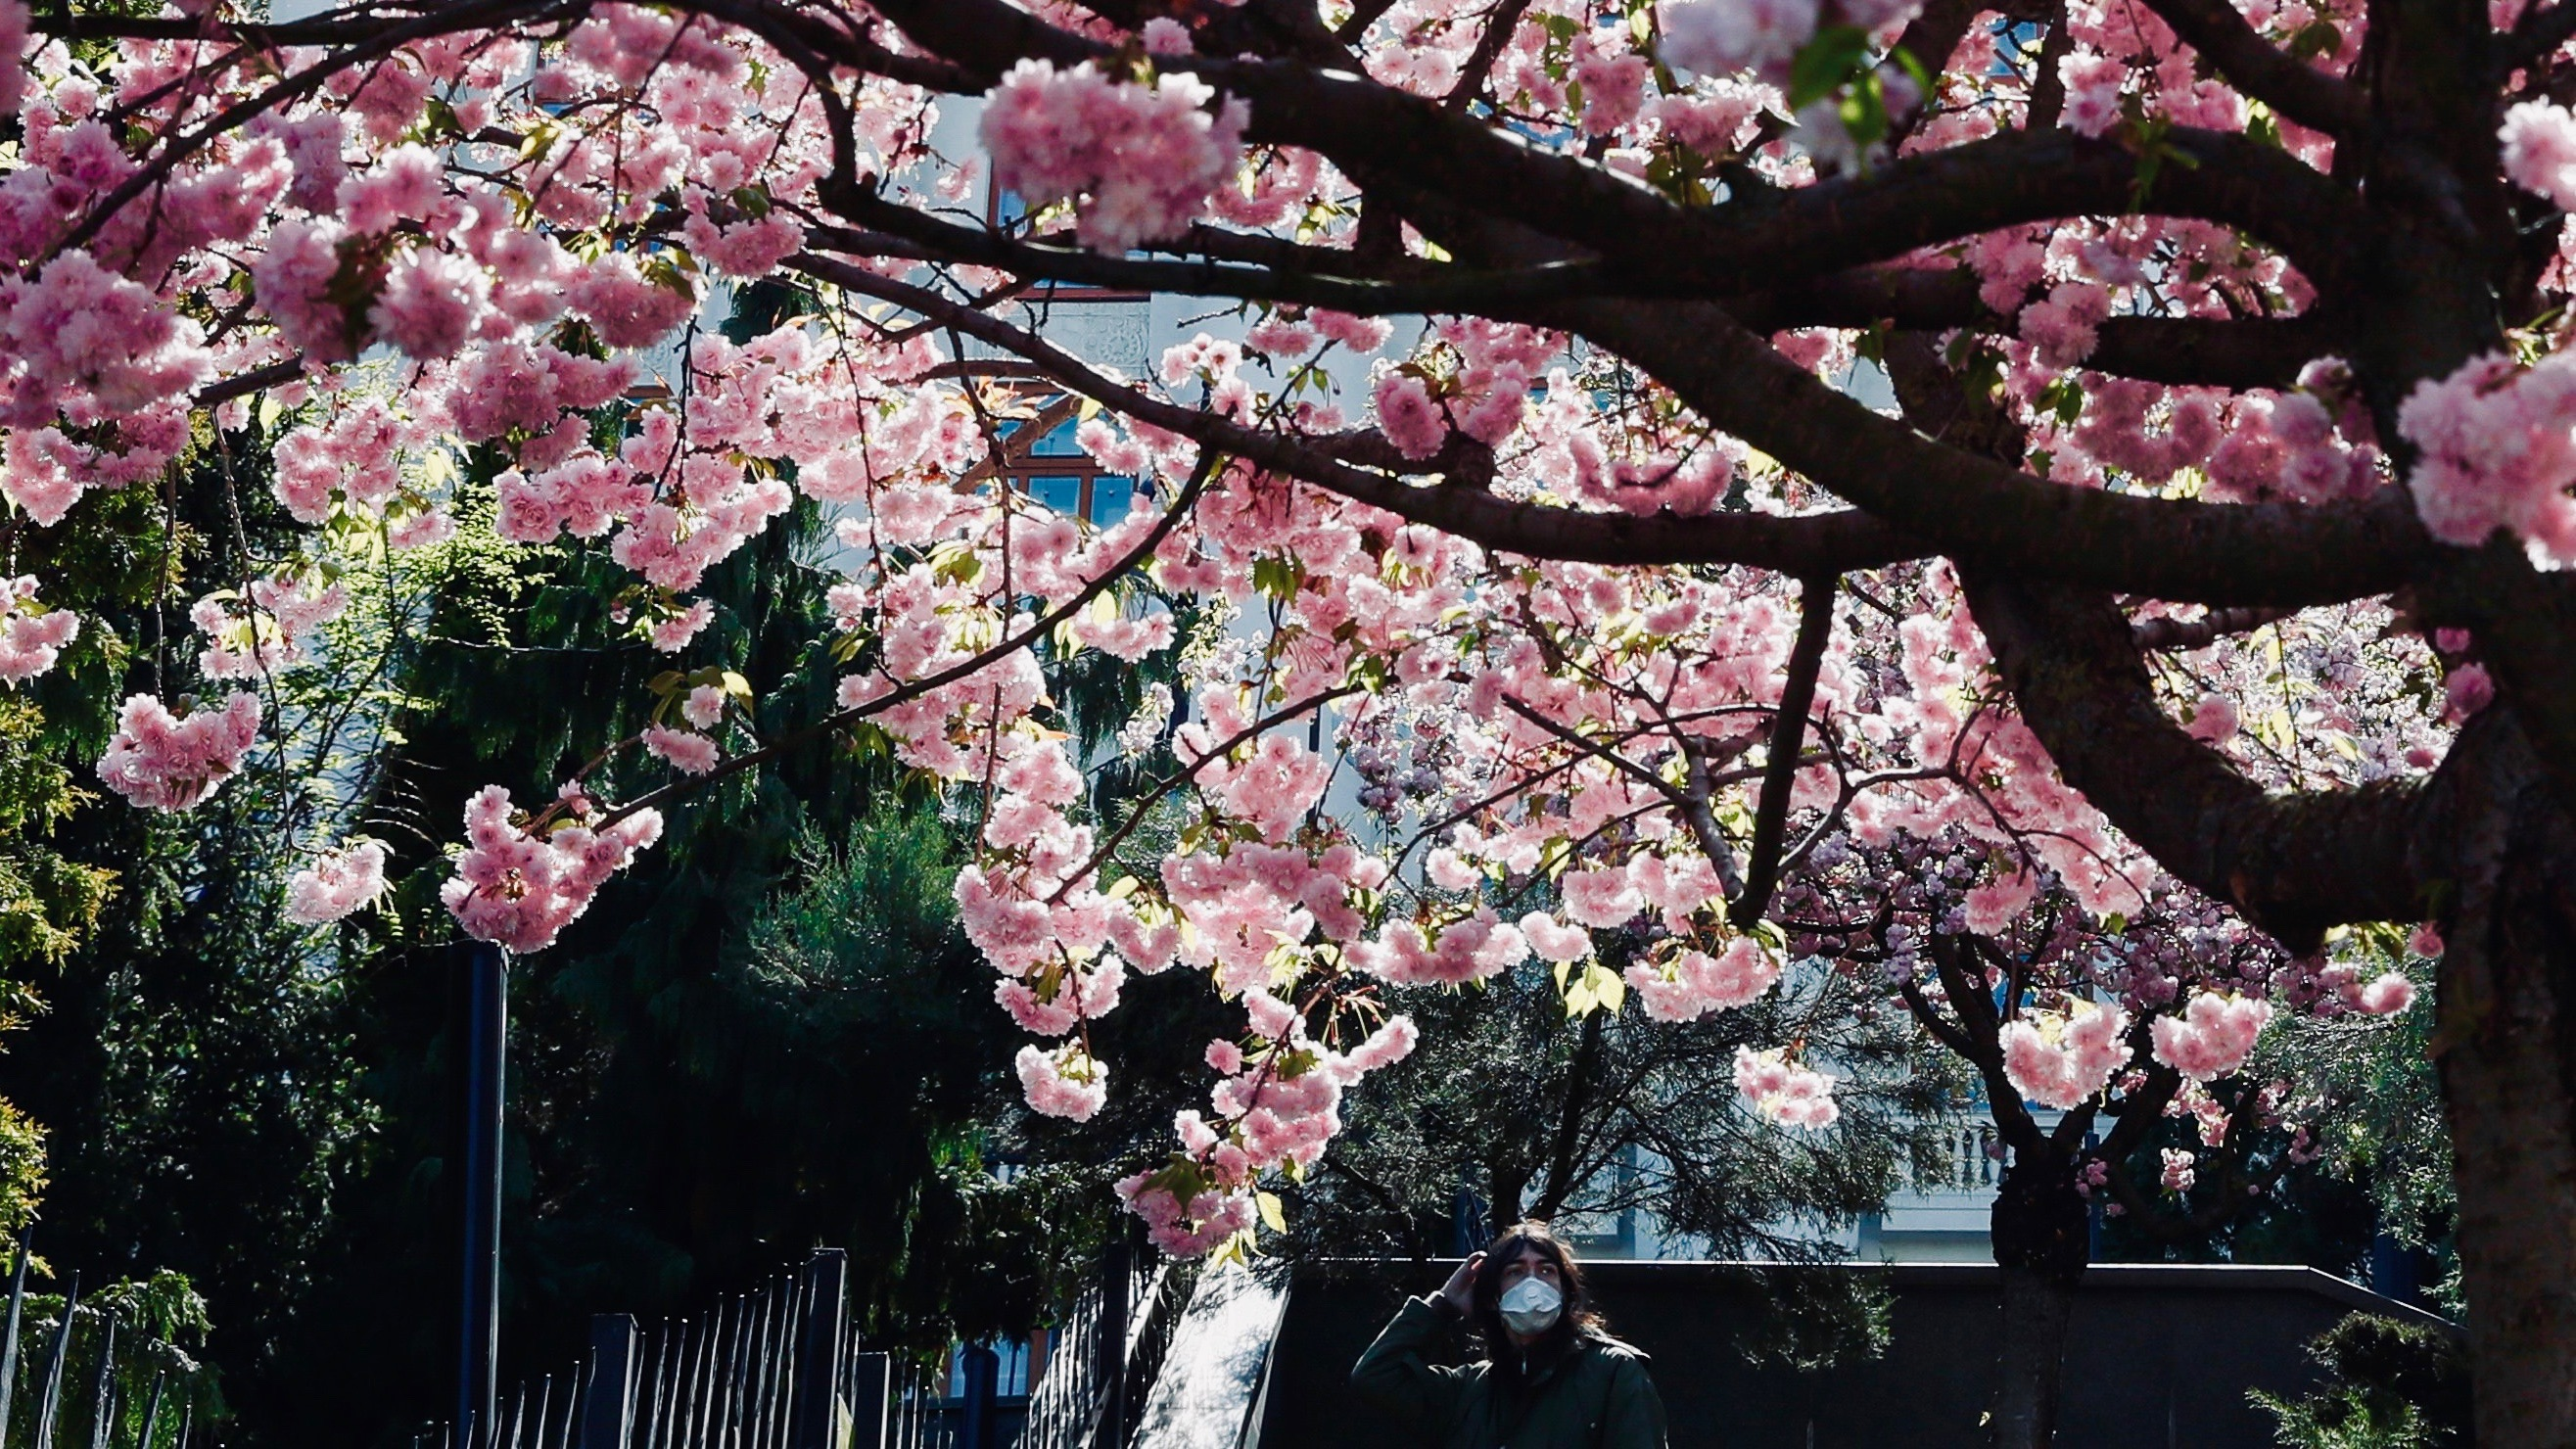 A masked person looks at camera under cherry blossoms.